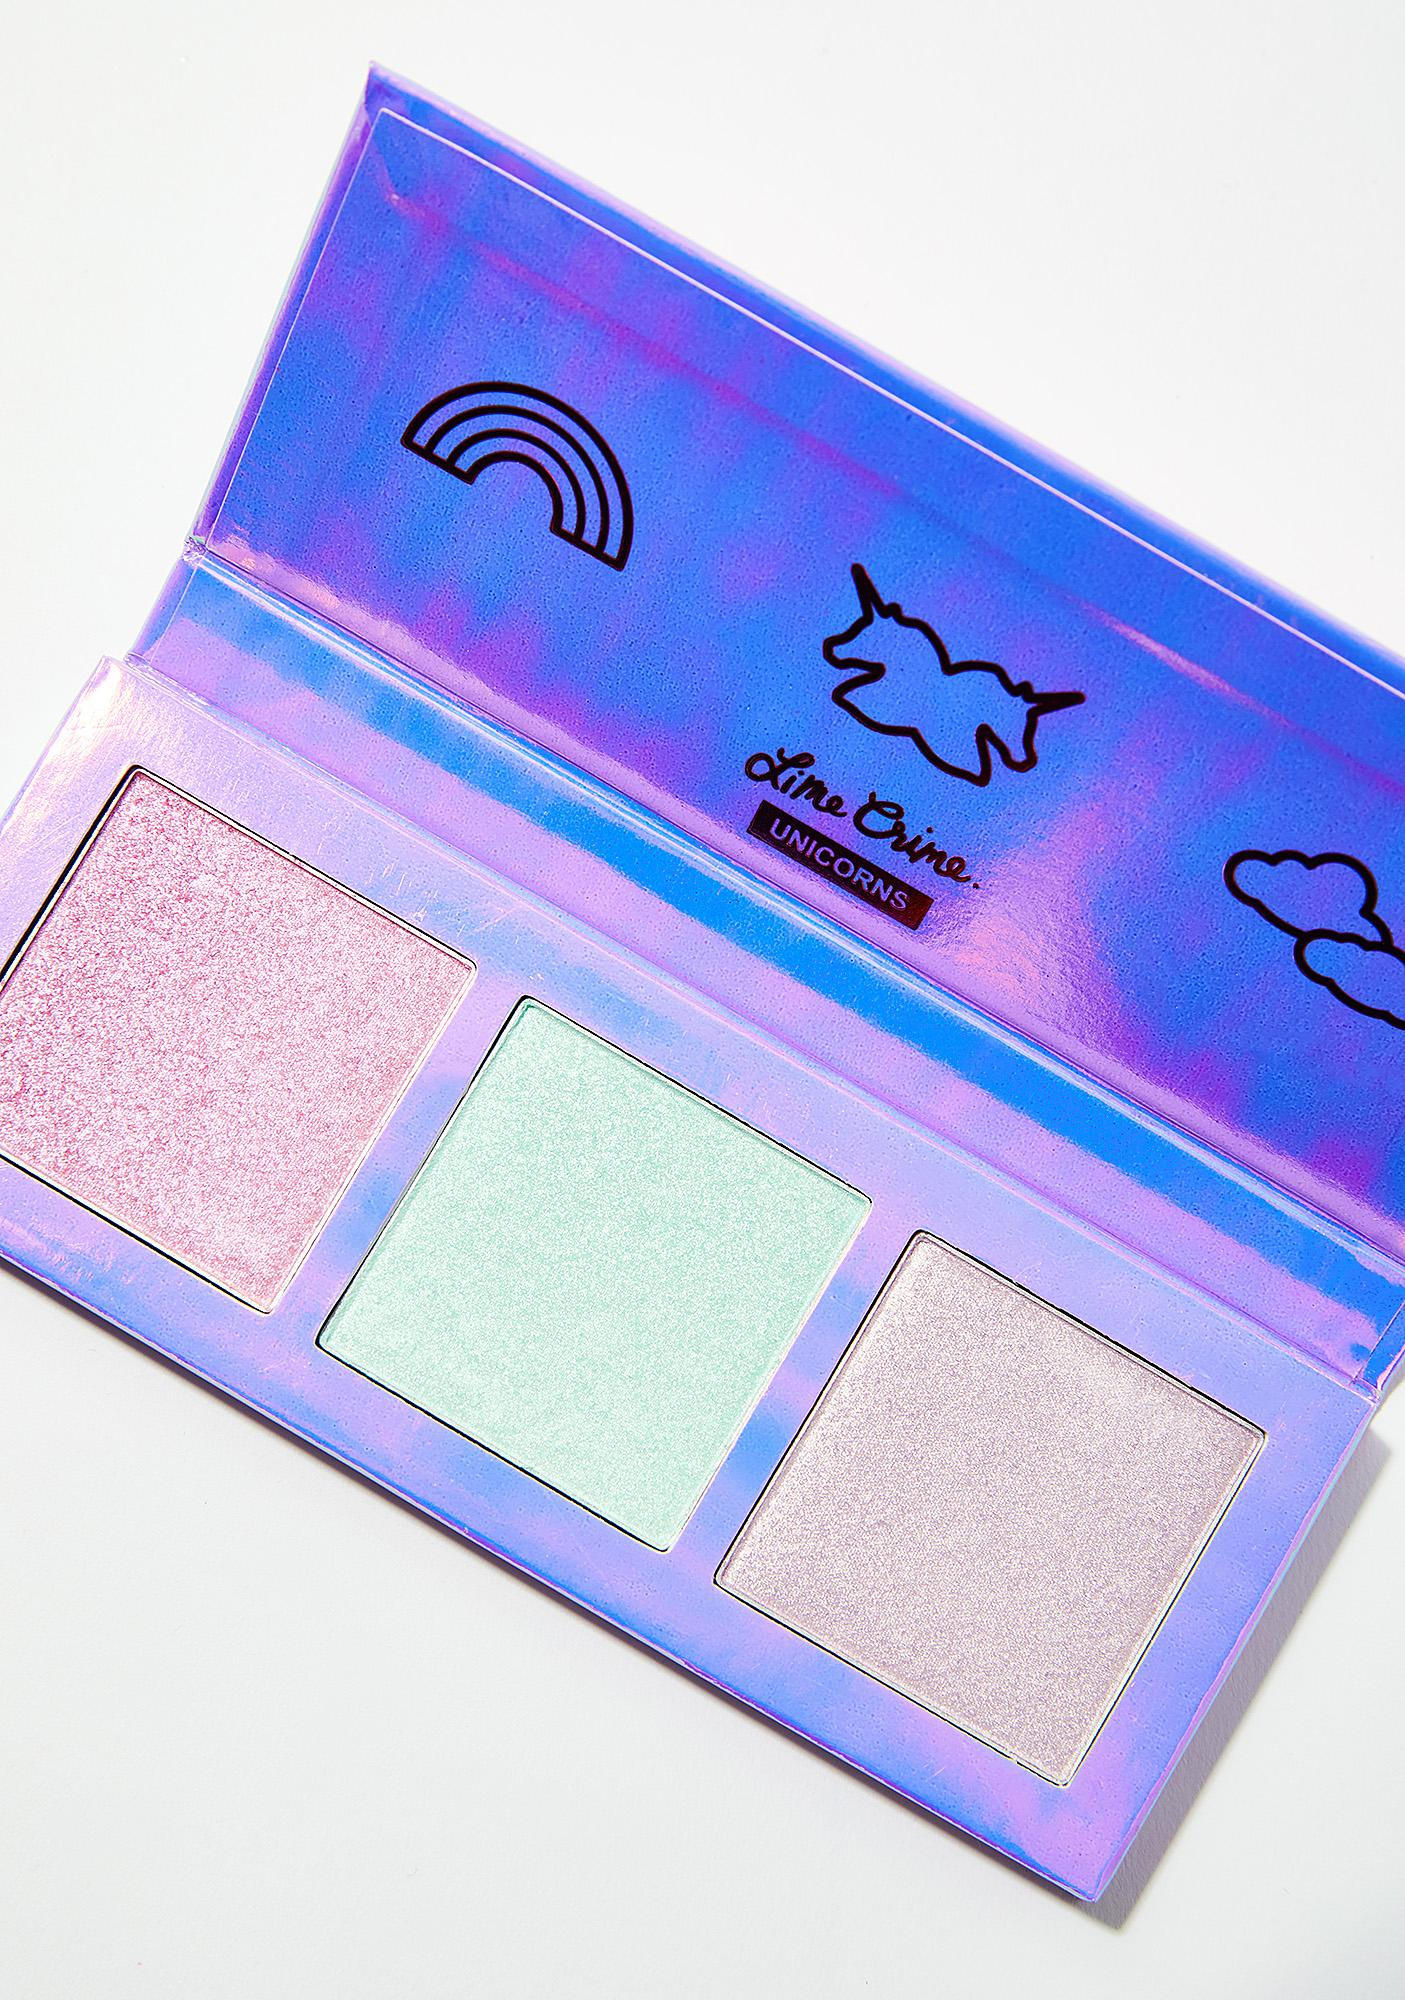 Lime Crime Unicorns Hi-Lite Palette